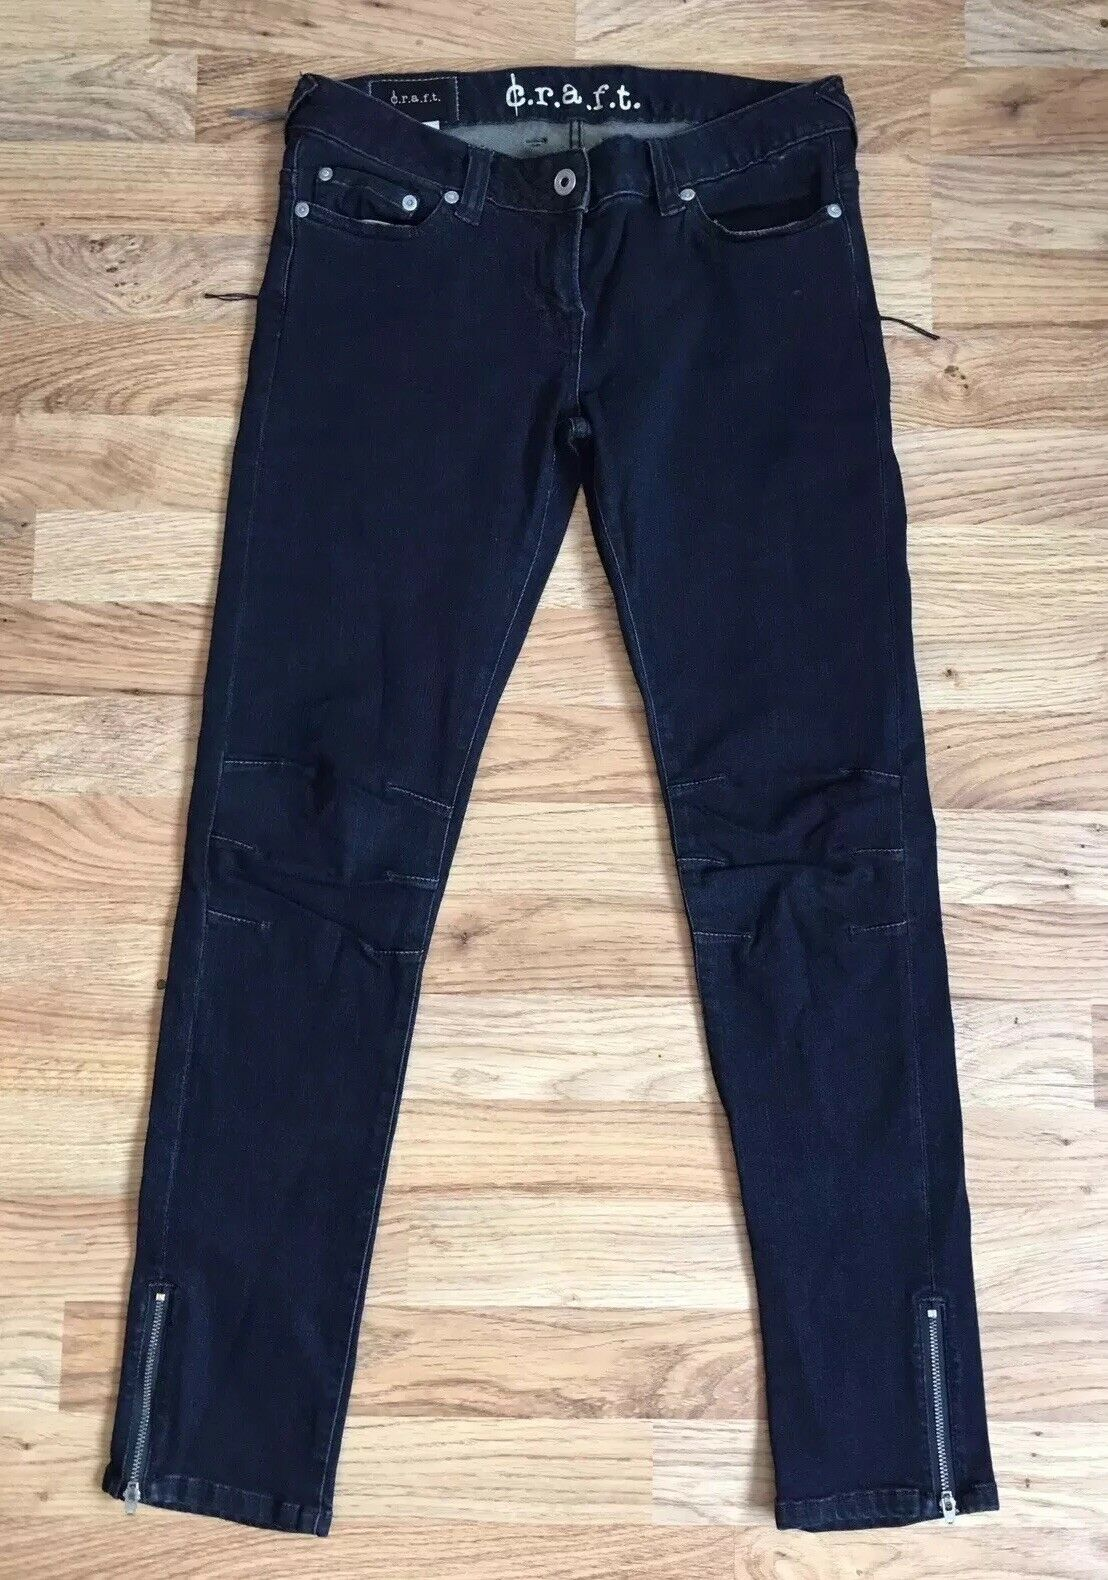 C.R.A.F.T. Angel Superstretch Next Morning Wash bluee Skinny Jeans Size 27in NWT